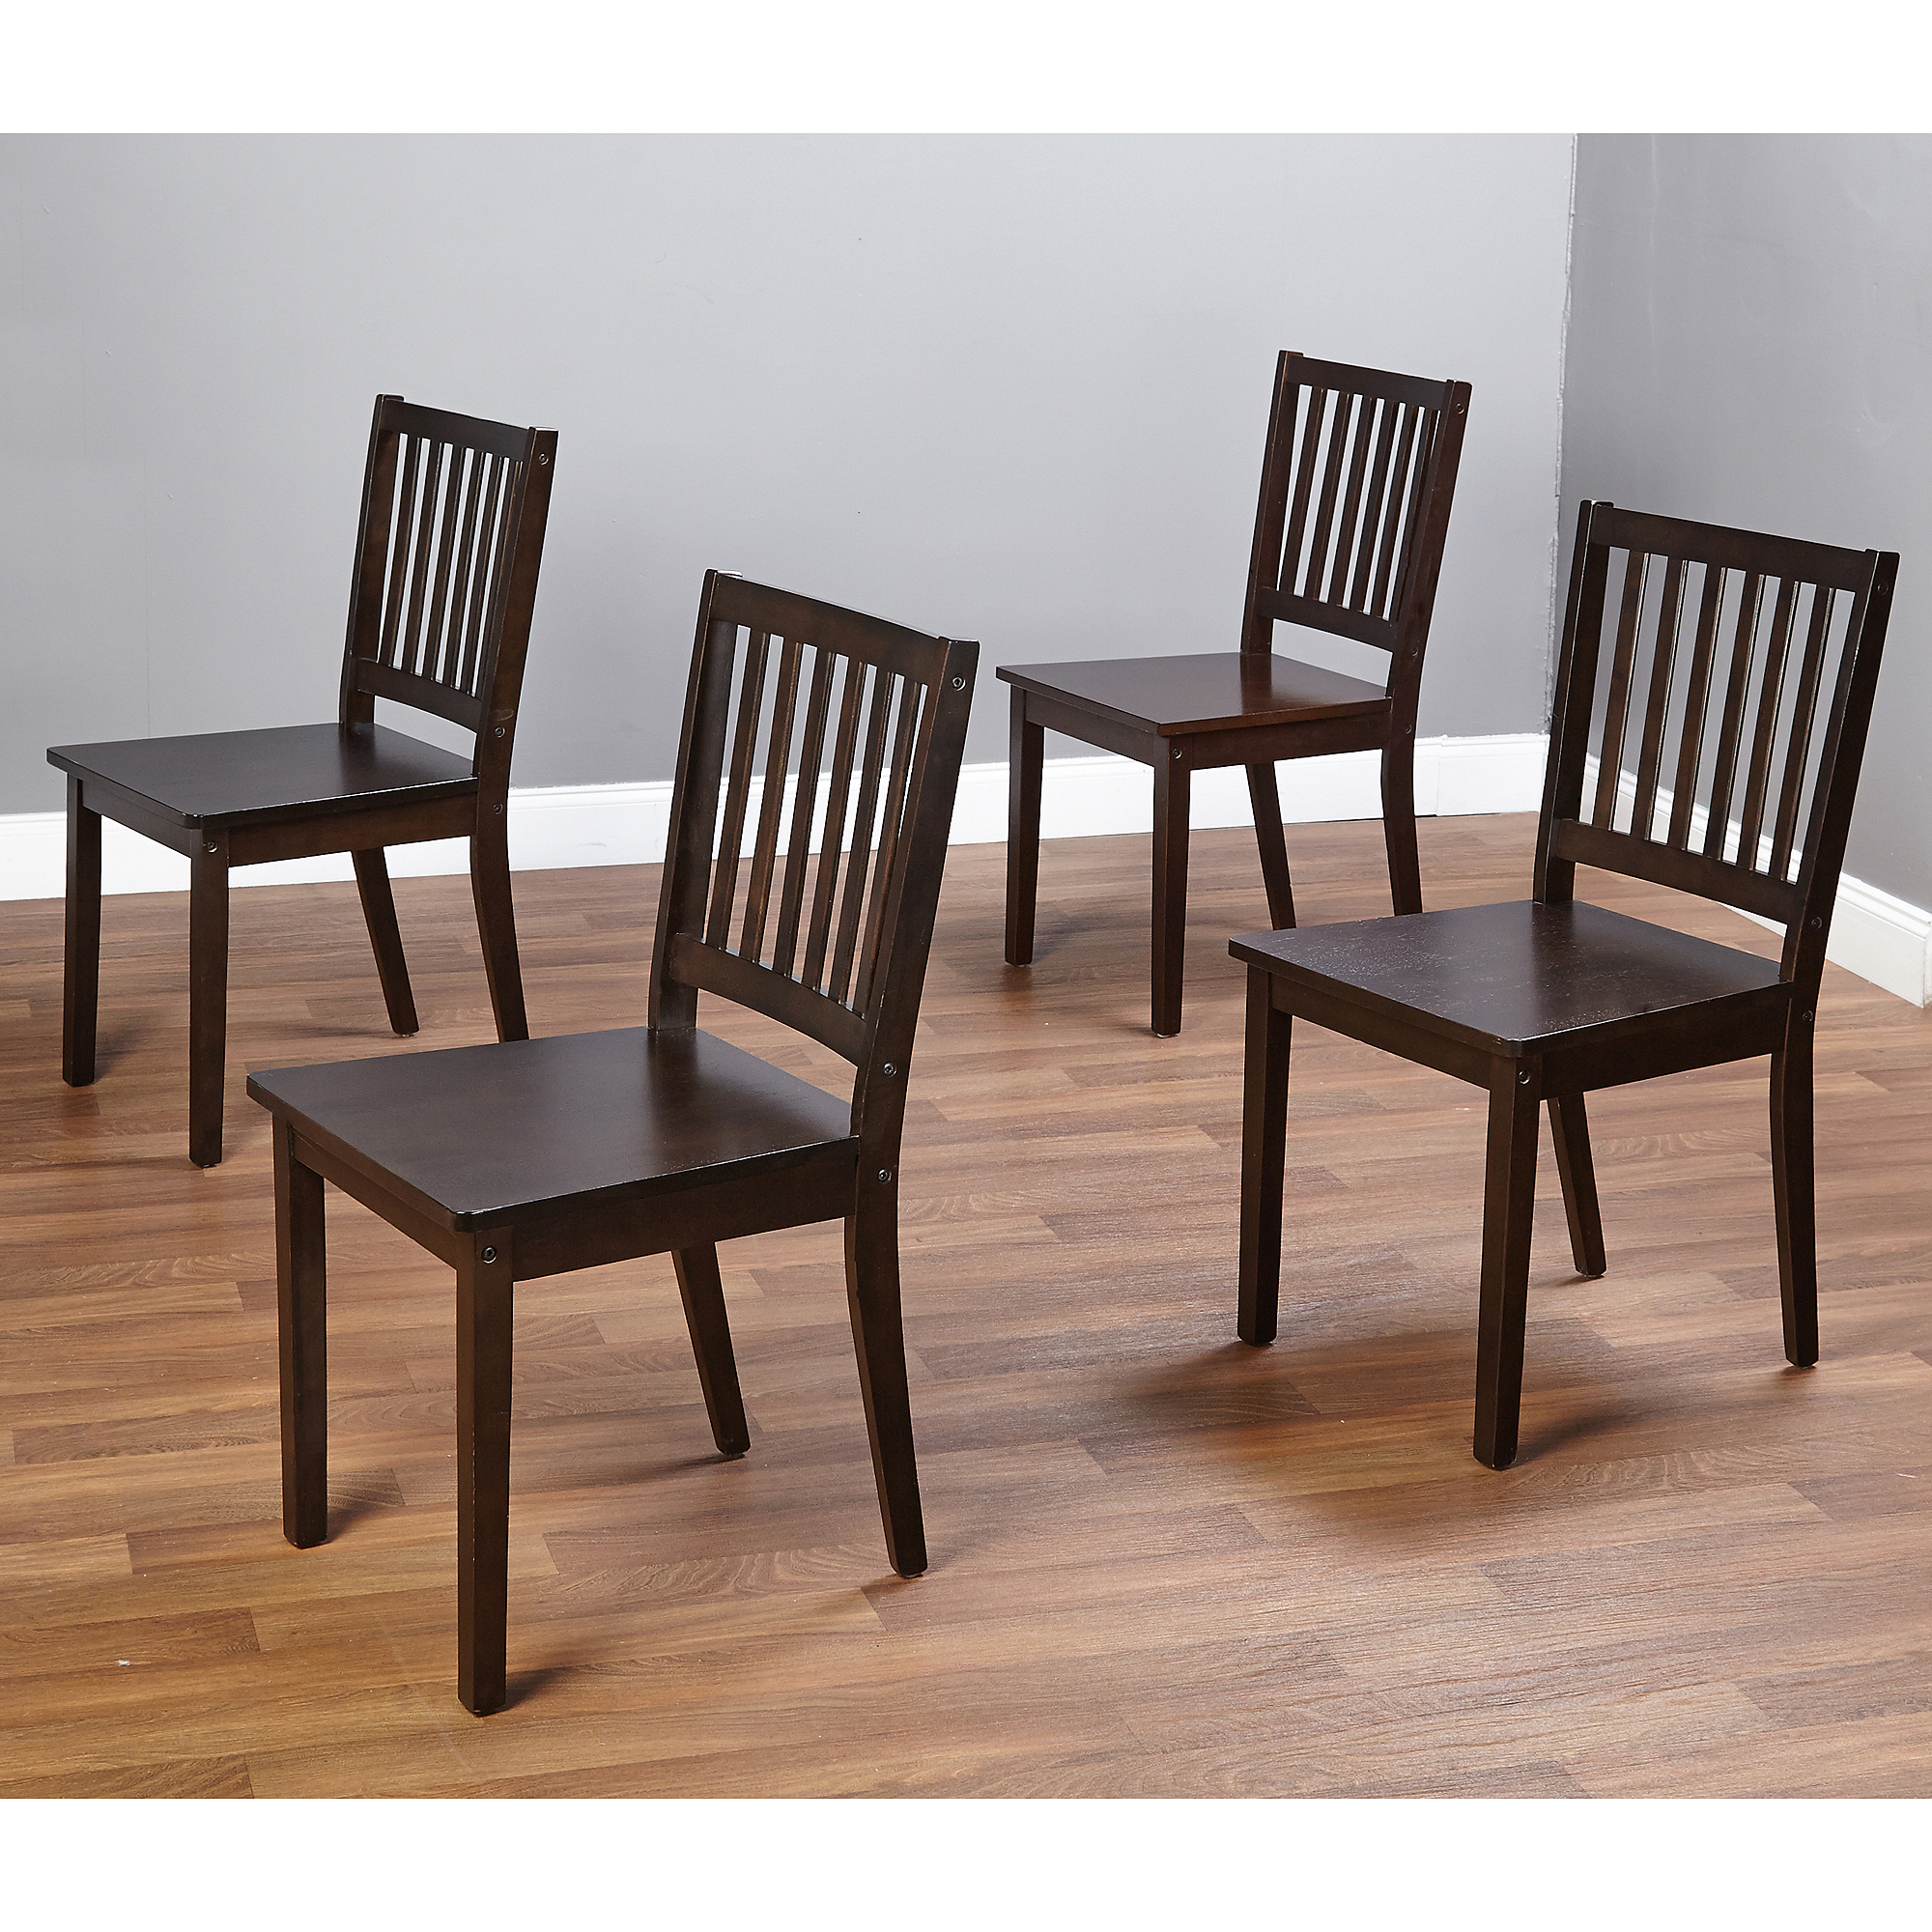 Dining room chairs Shaker dining room chairs, set of 4, espresso - walmart.com PZMBGMO